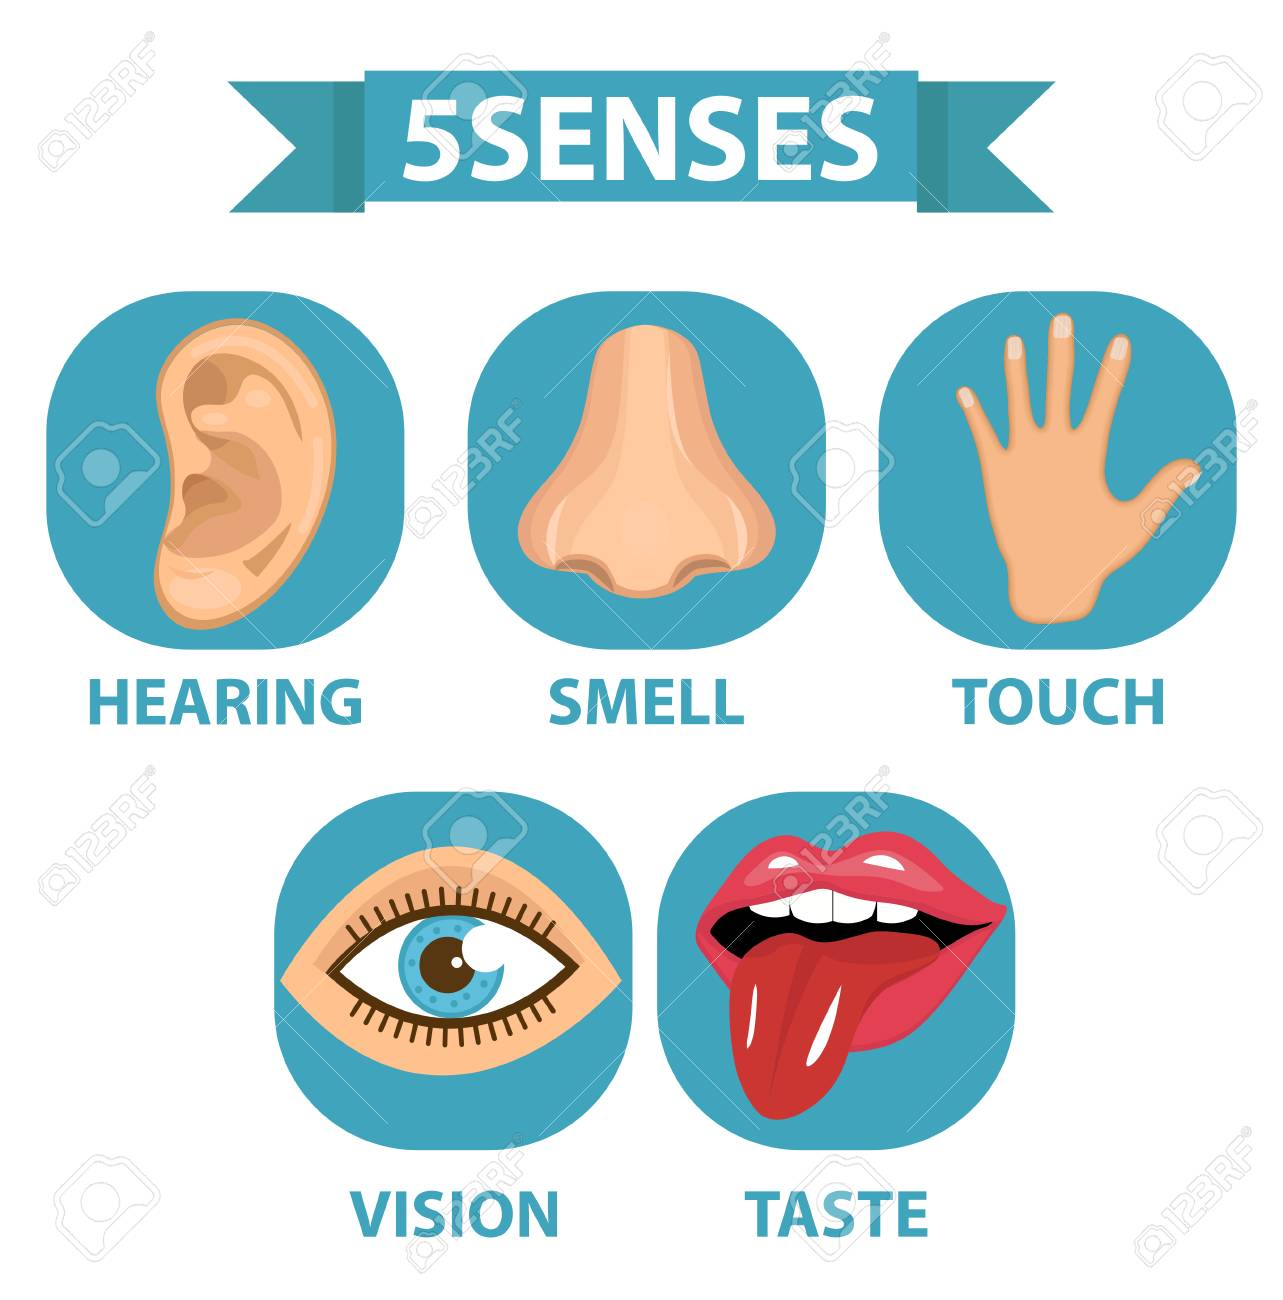 Five Senses Icon Set Touch Smell Hearing Vision Taste 1283x1300